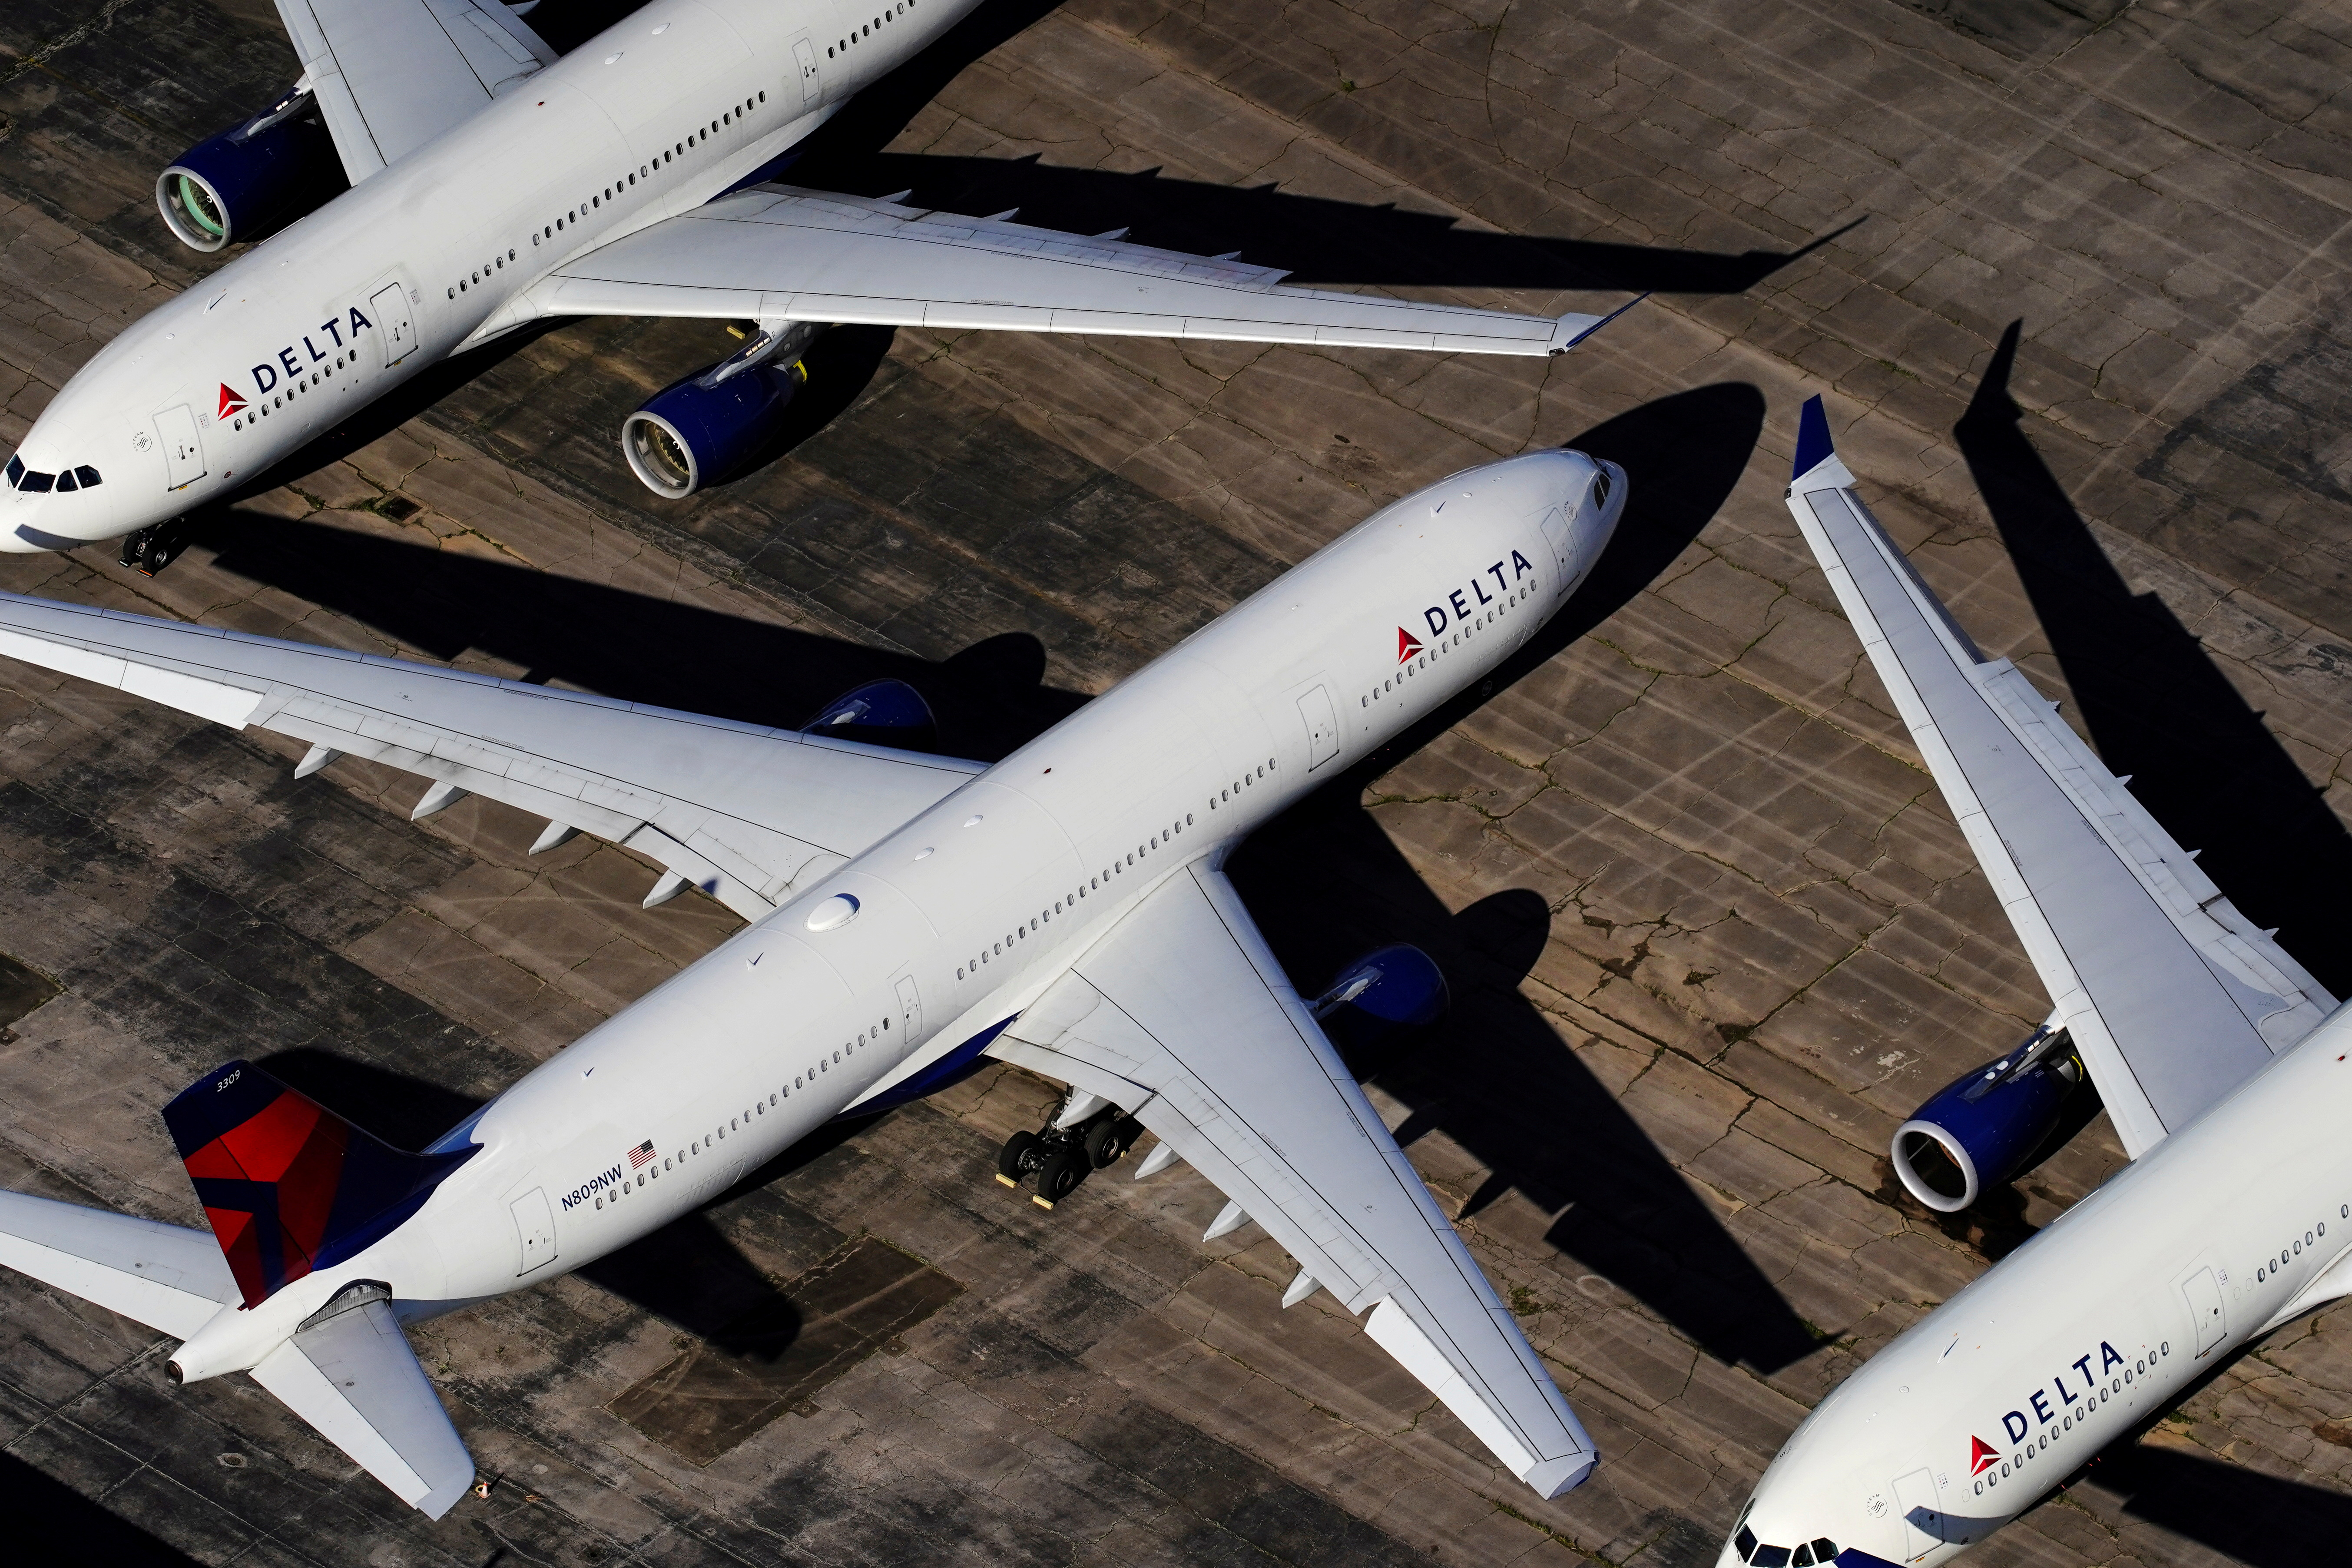 Delta Air Lines passenger planes are seen parked due to flight reductions made to slow the spread of coronavirus disease (COVID-19), at Birmingham-Shuttlesworth International Airport in Birmingham, Alabama, U.S. March 25, 2020.  REUTERS/Elijah Nouvelage/File Photo